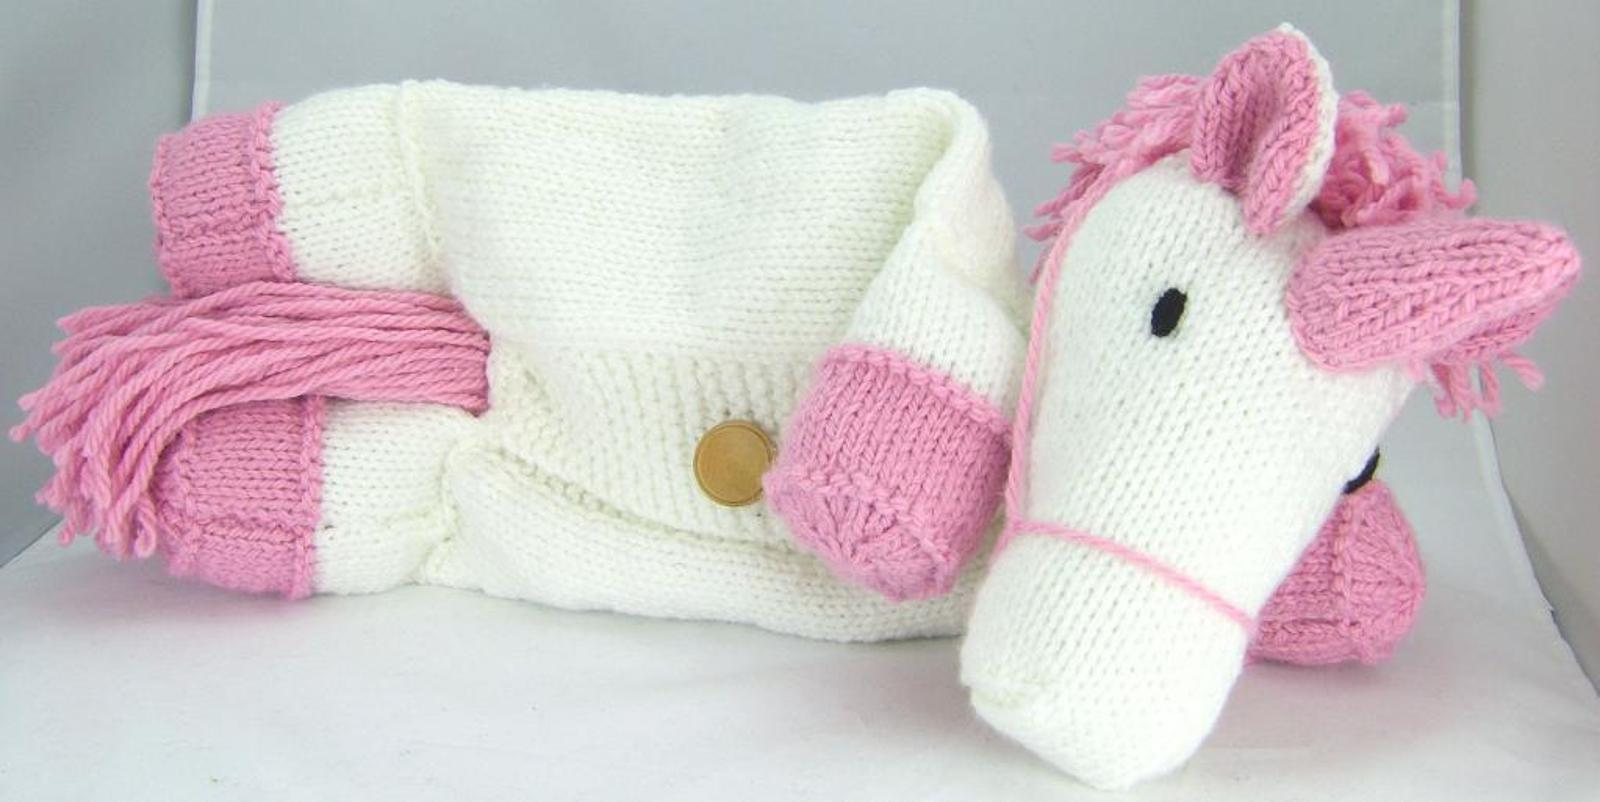 Suki the Unicorn Pajama Case Knitting Pattern